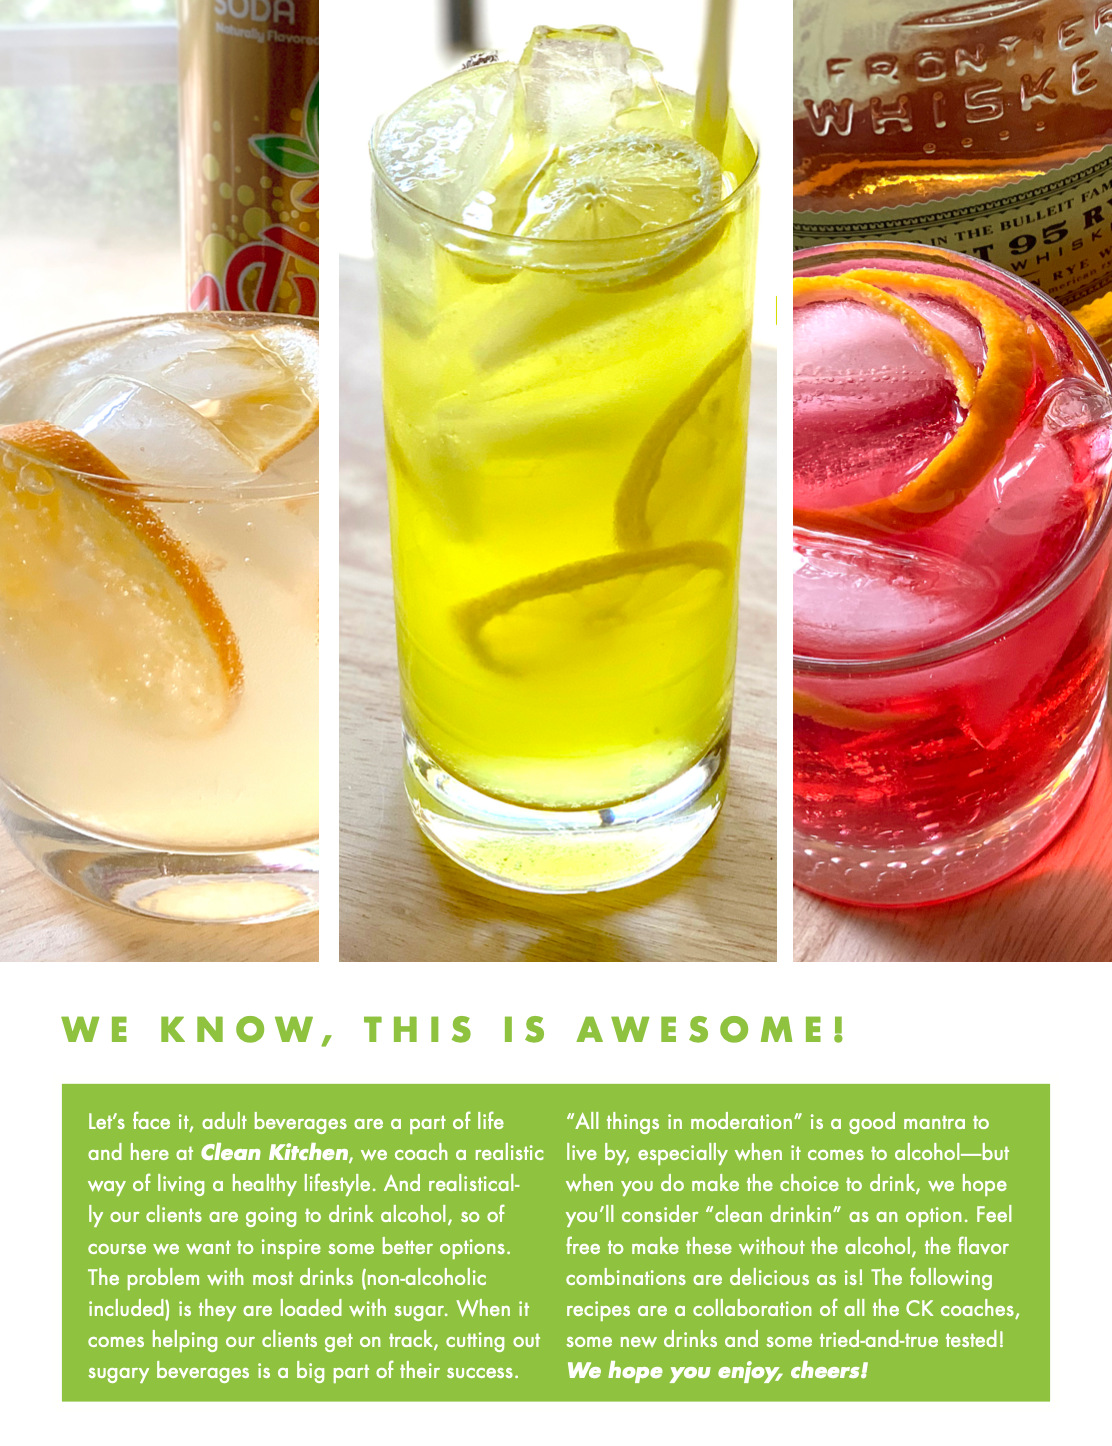 Clean Kitchen's Clean Drinkin eBook